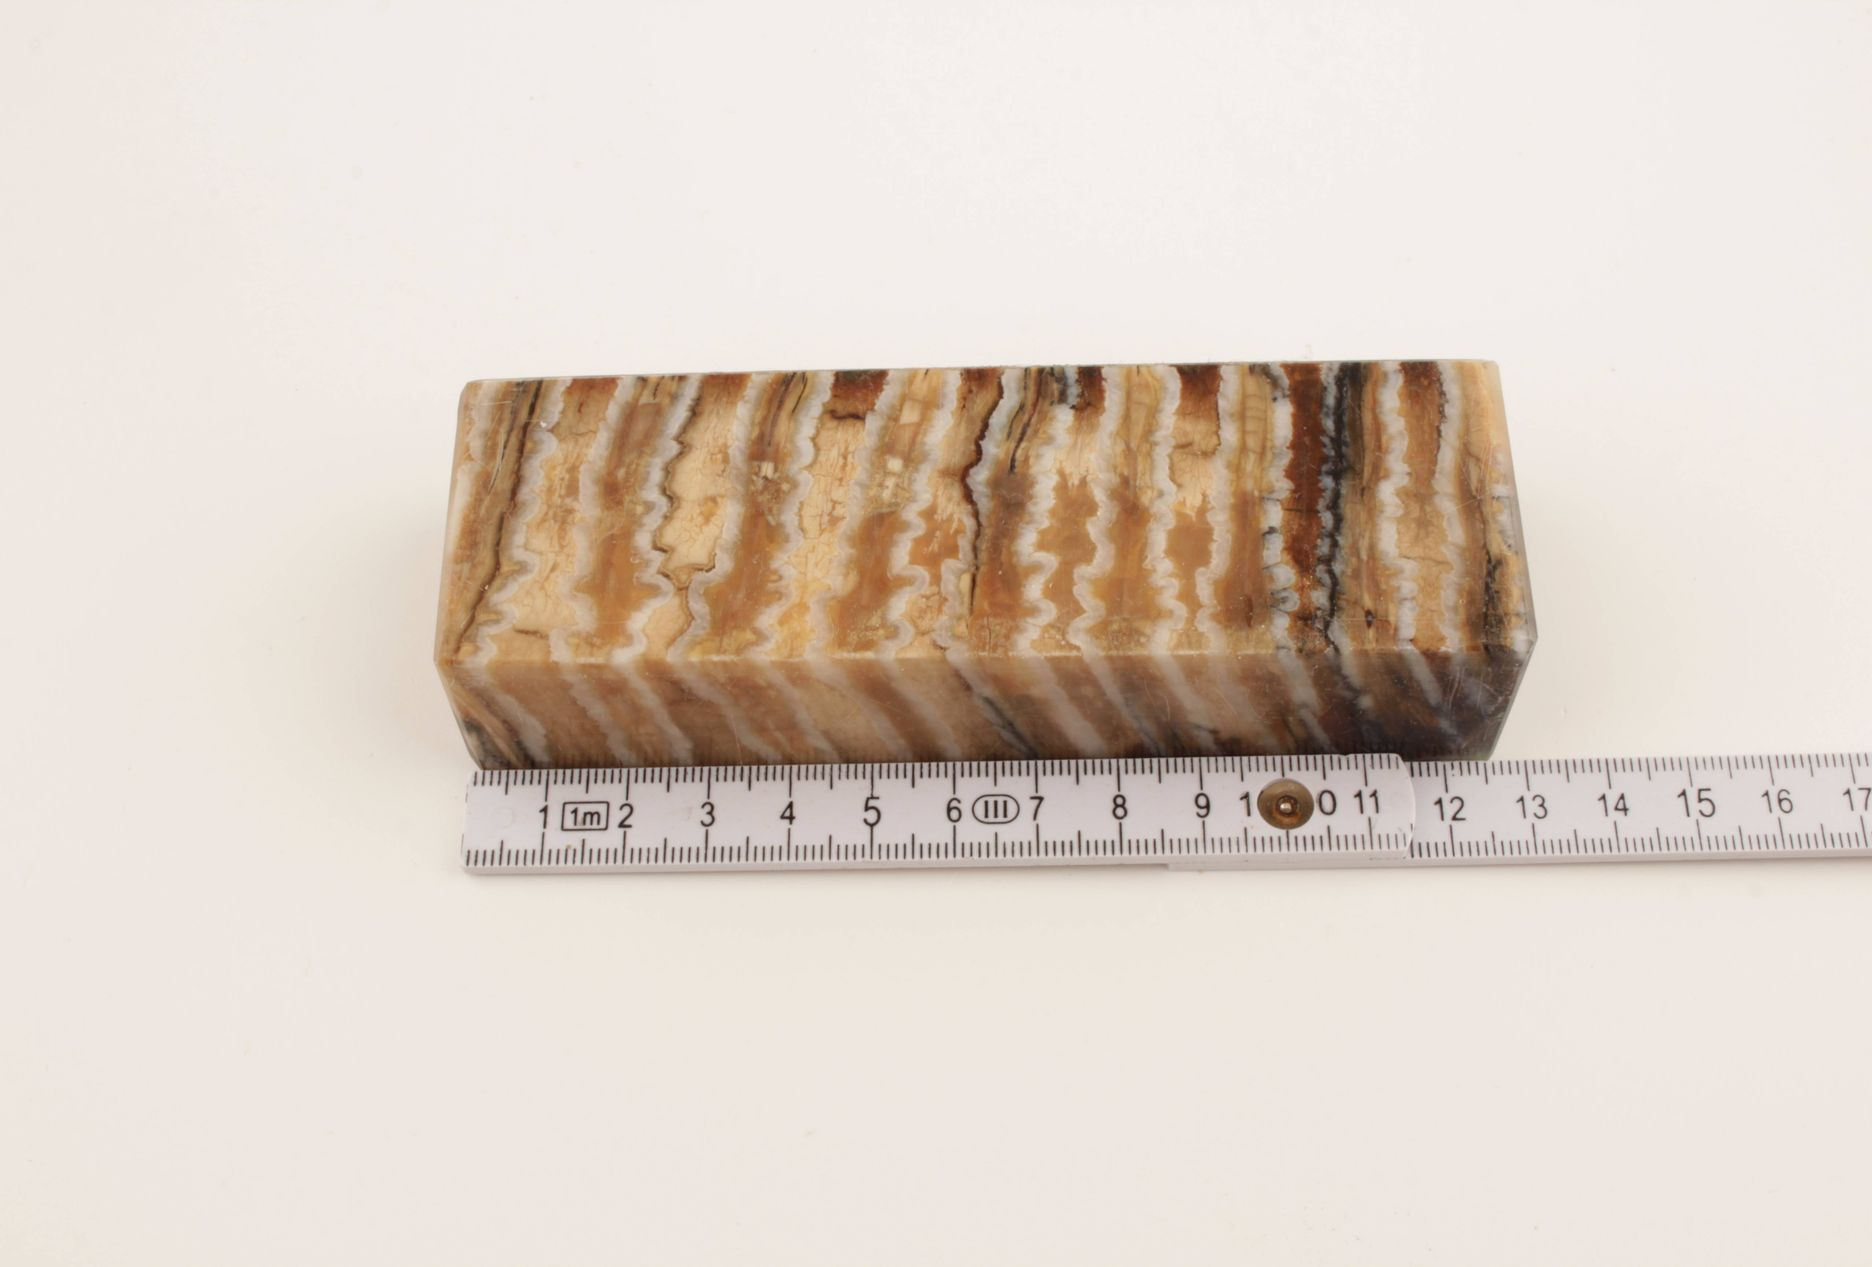 Beige-brown stabilized mammoth molar